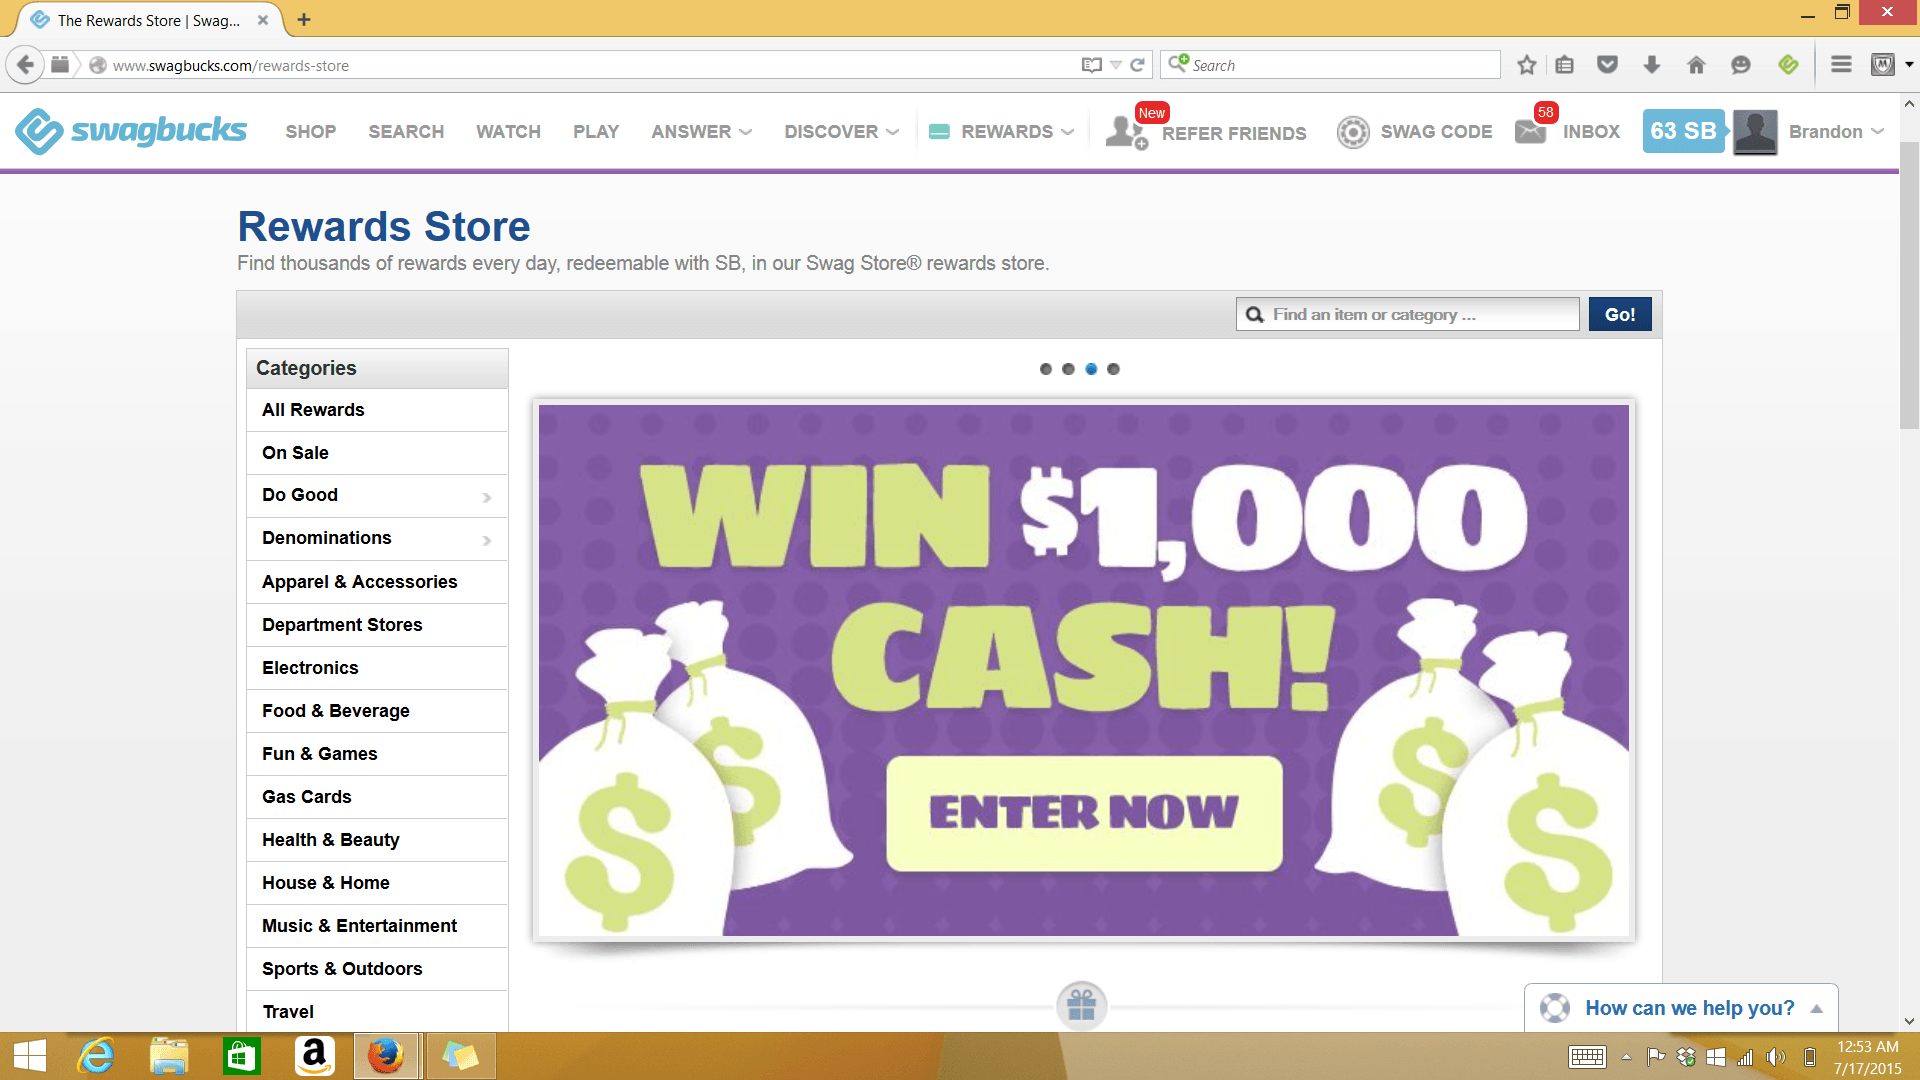 Swagbucks rewards store